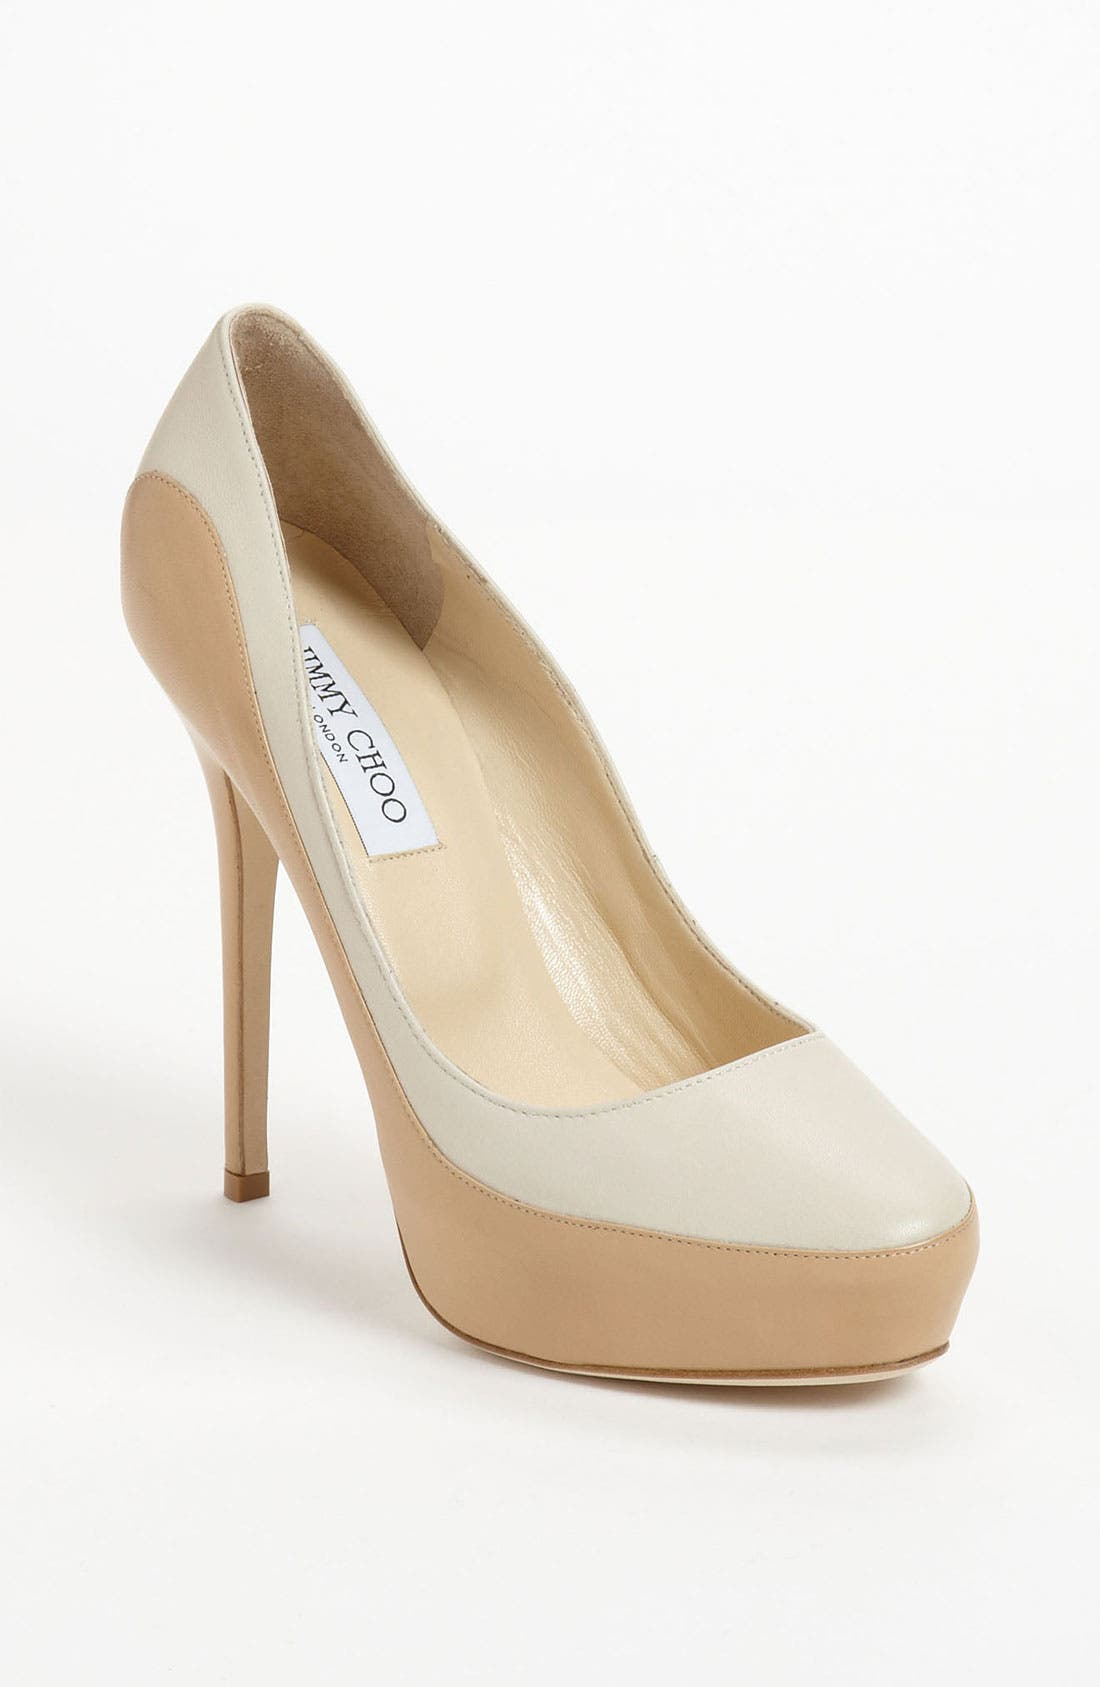 Main Image - Jimmy Choo 'Sepia' Pump